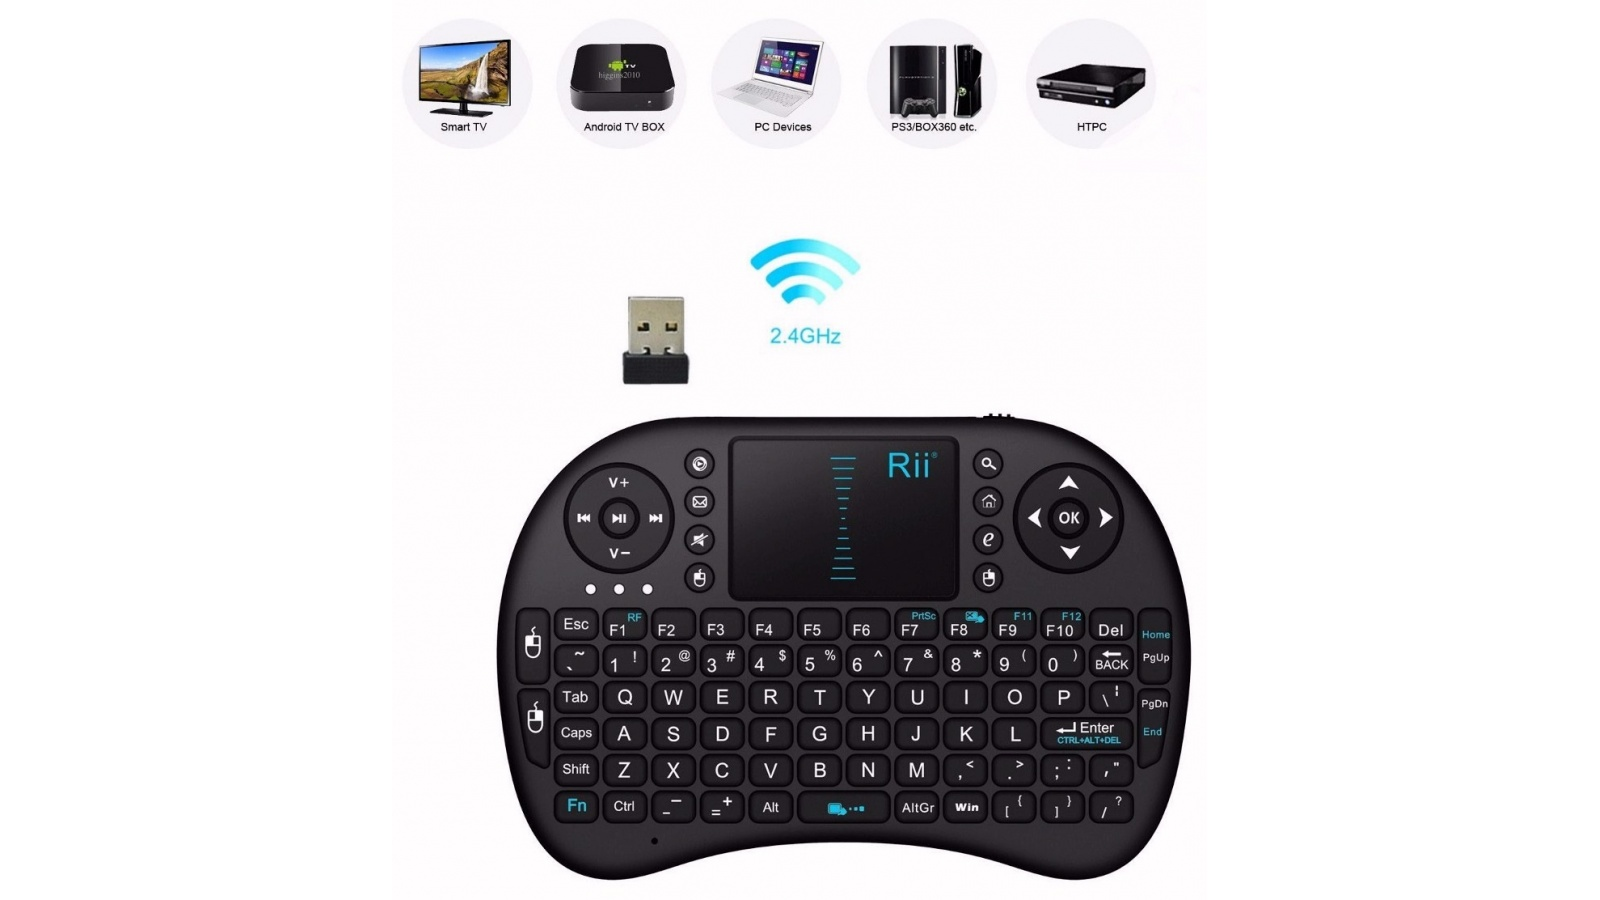 Teclado Mouse Inalámbrico Android Smart Tv Tablet Ps3 Pc USB